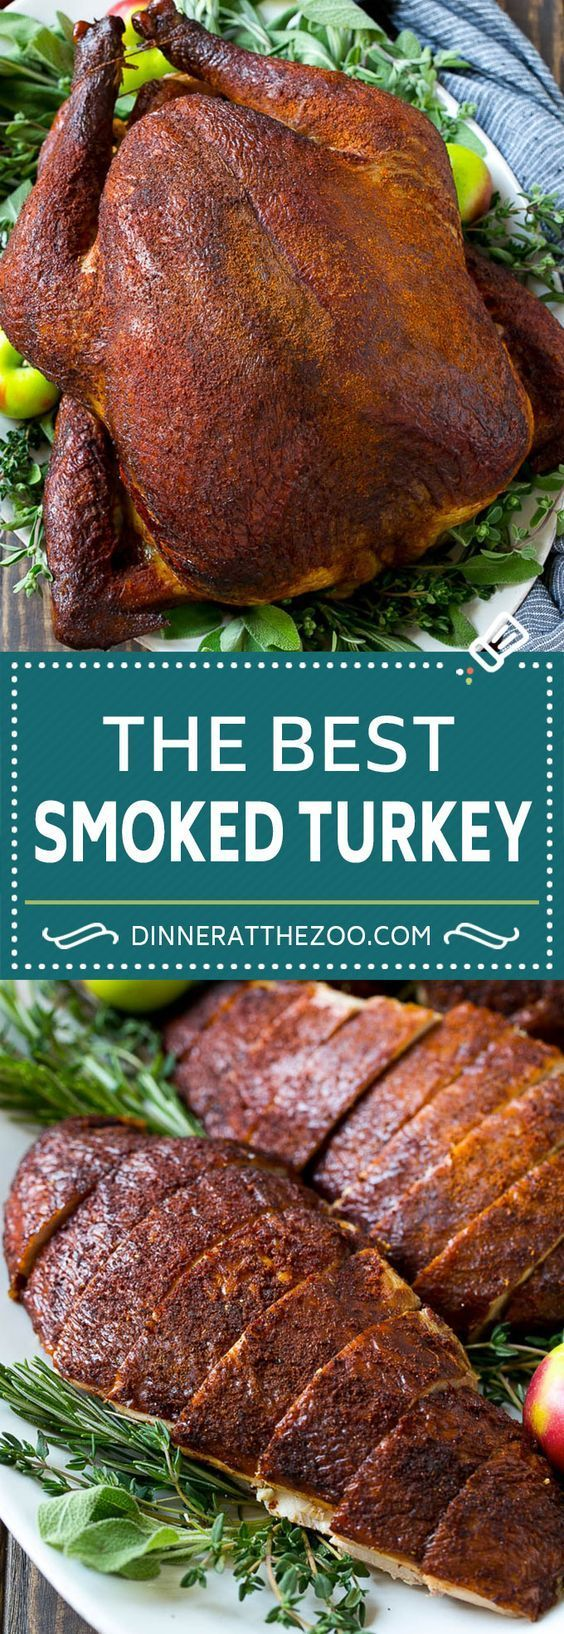 Christmas Dinner Recipes and Menus - 34 Best Ideas for Christmas Party. Are you tired of same old Christmas dinner recipes your grandma gave to your mom and you are doing them every year? Want to try something different? Here's a collection of best dinner ideas for your Christmas party! #christmas #christmasdinner #christmasfood #christmasrecipes #chiristmas dinner main course Christmas Dinner Recipes and Menus - 34 Best Ideas for Christmas Party